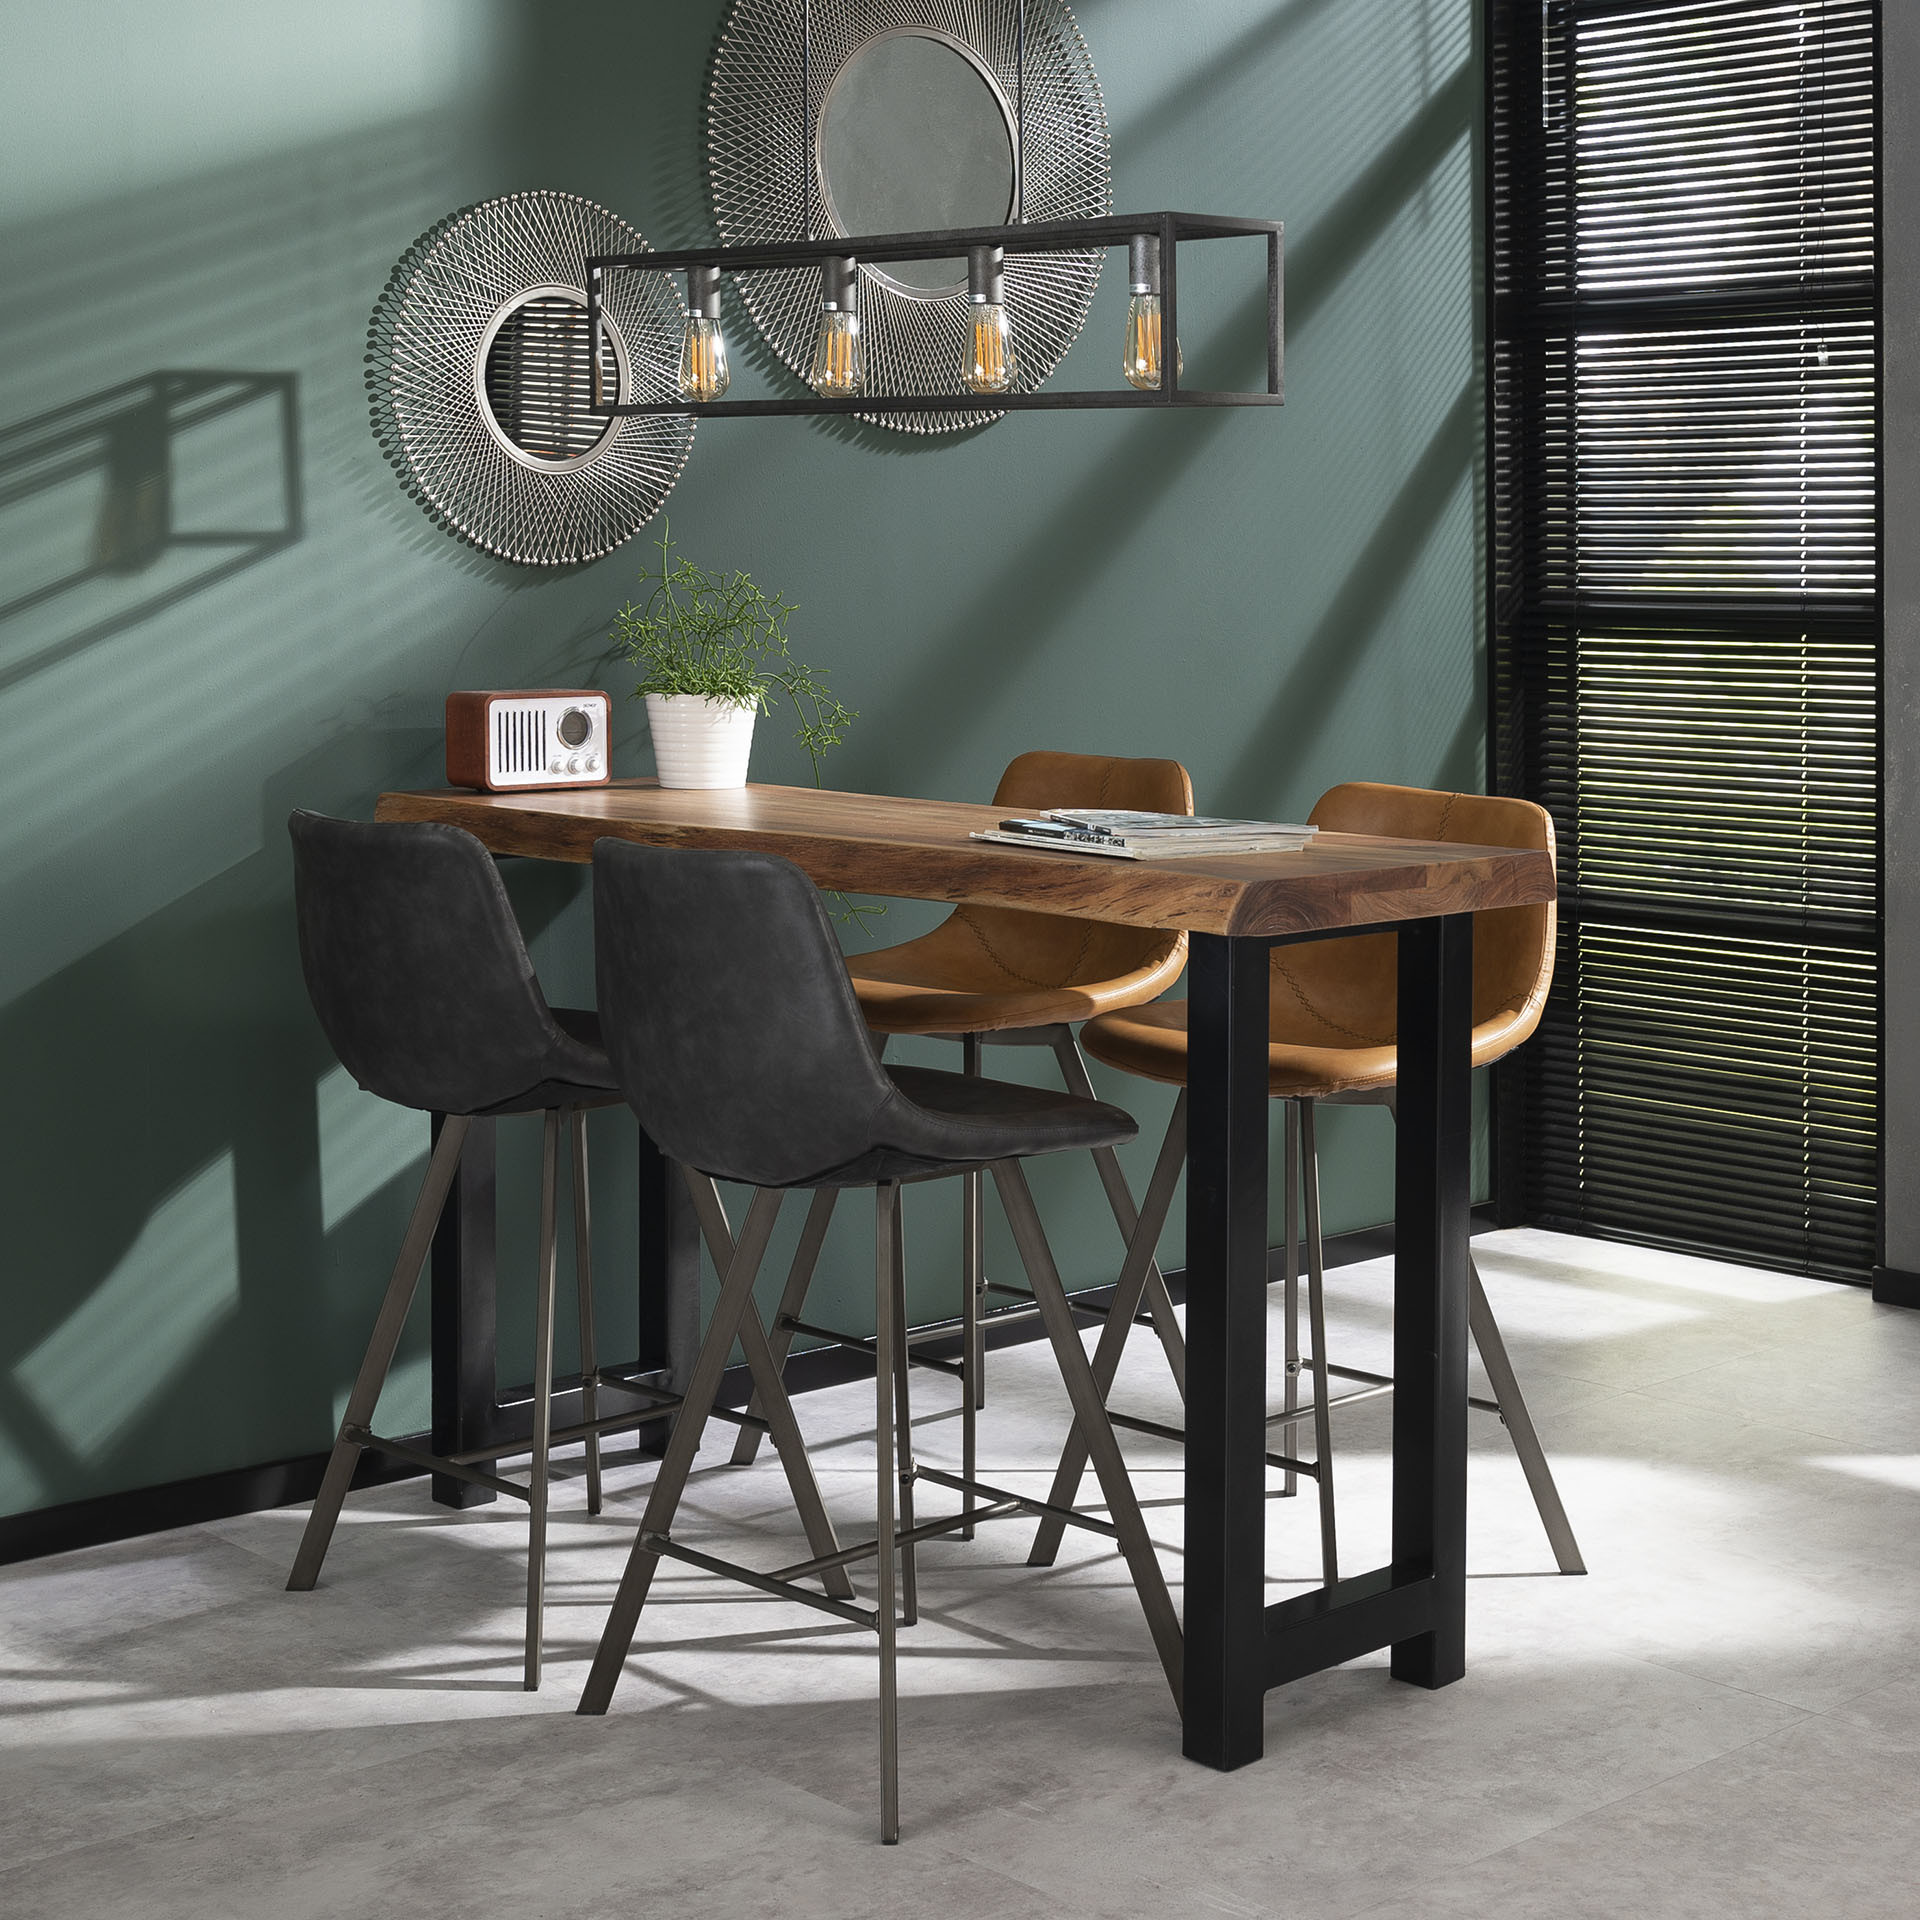 Table de bar industrielle en bois massif Oliver